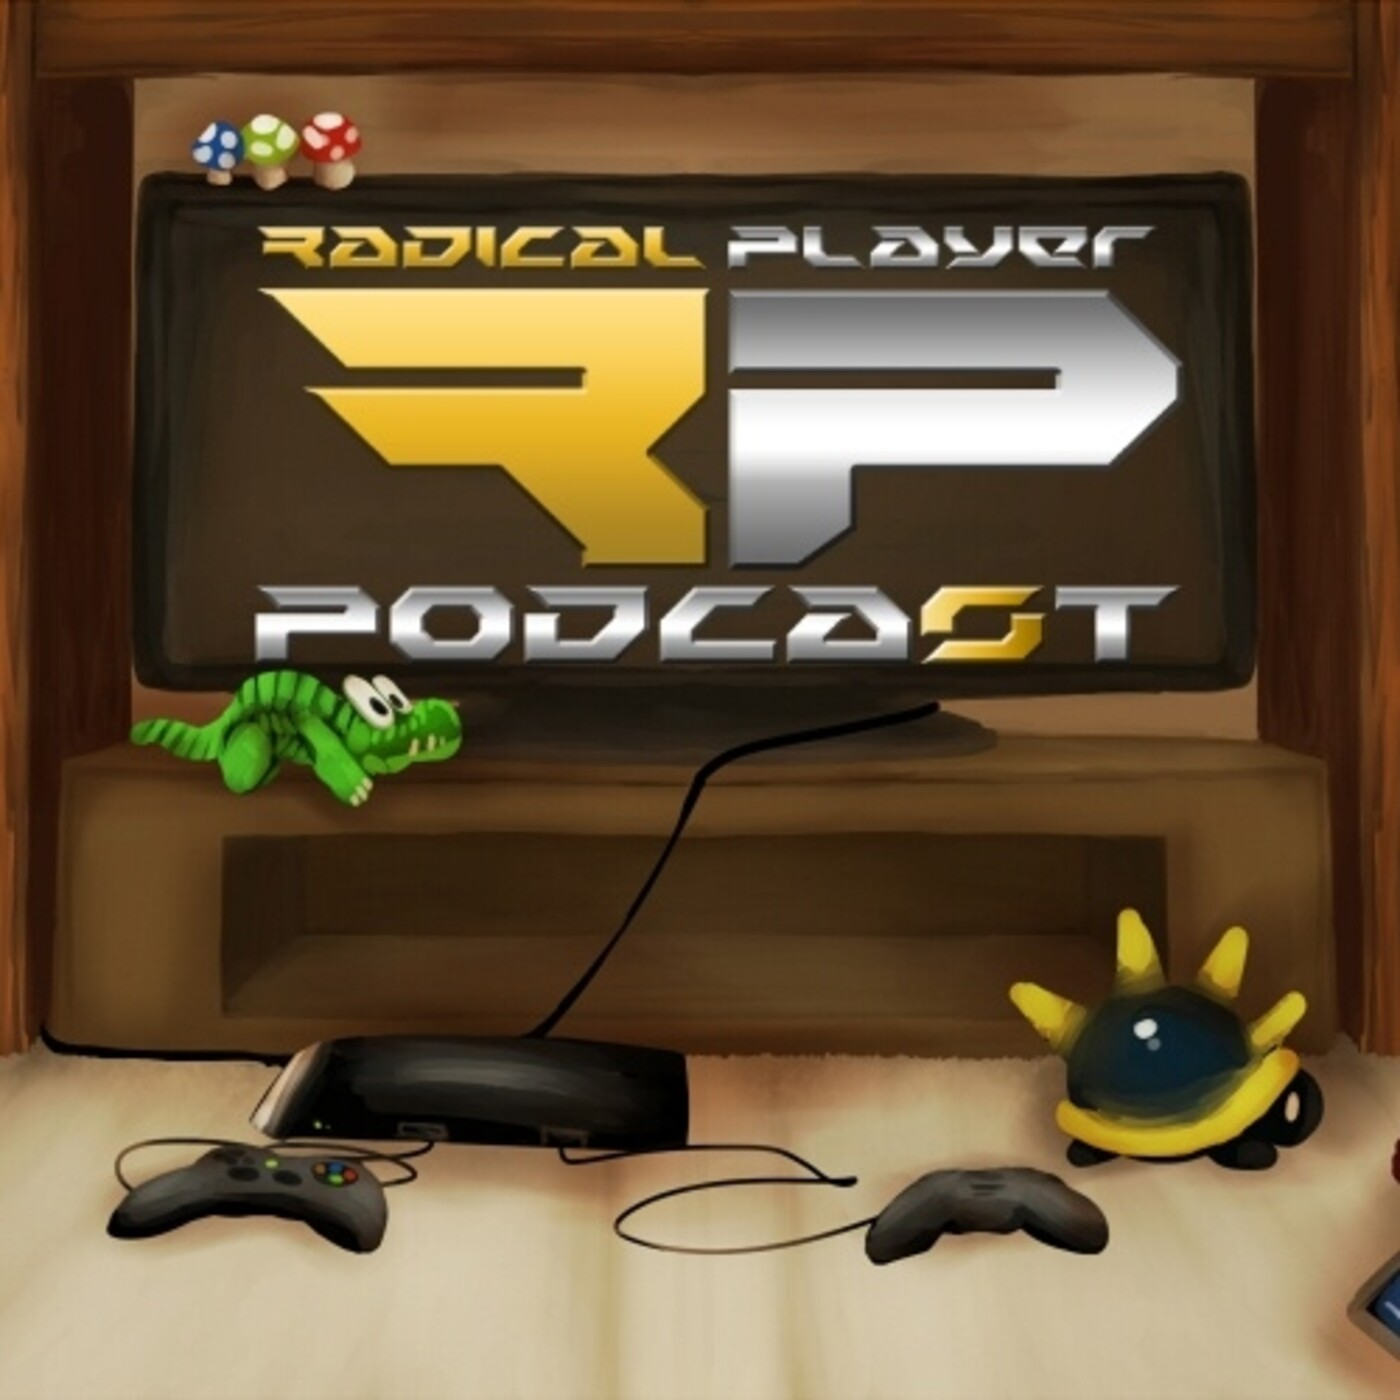 Radical Player podcast